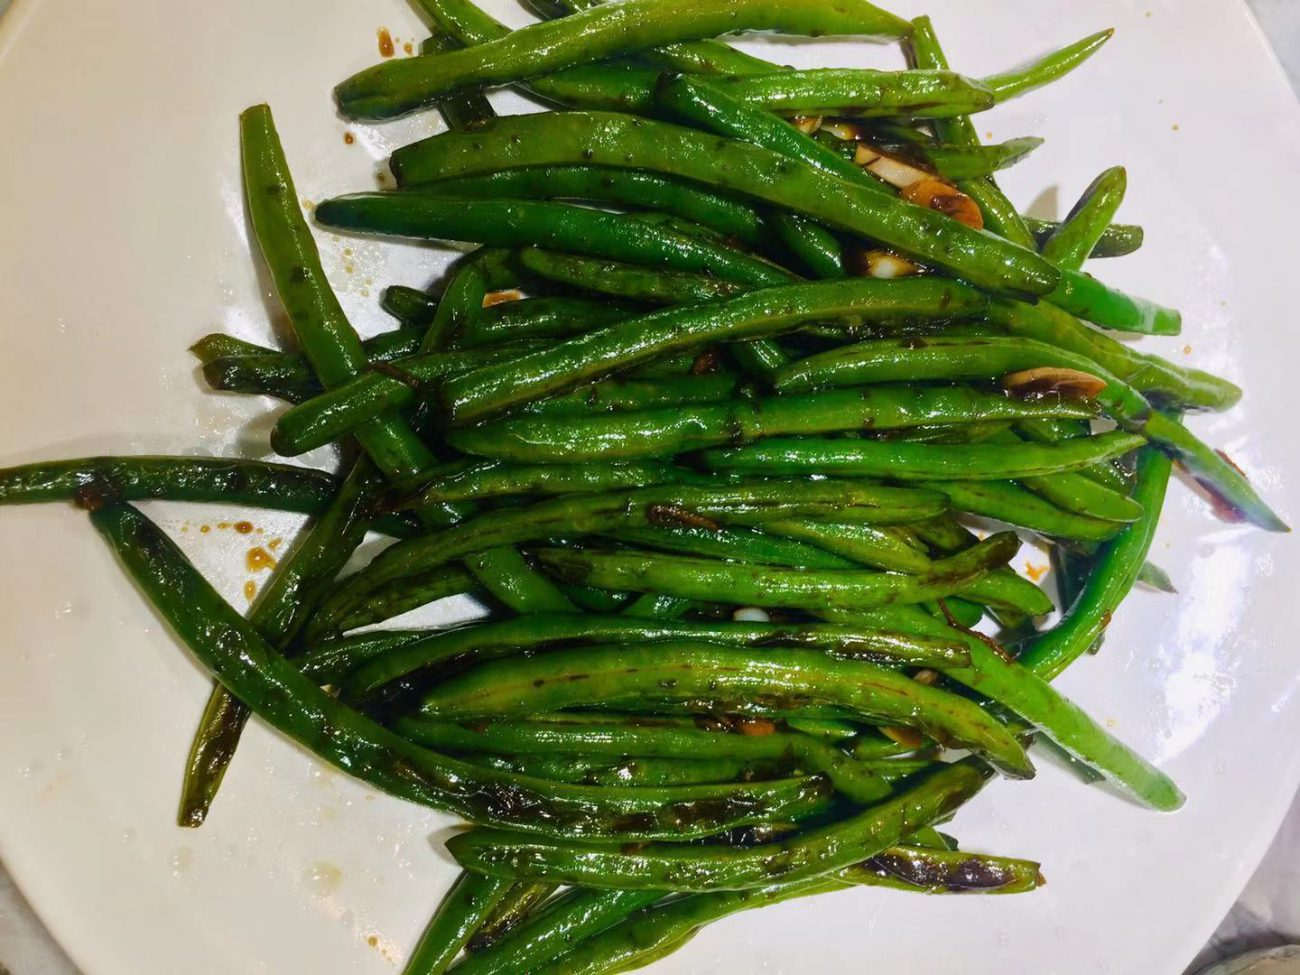 AirGO Air fried green beans with sauce and garlic